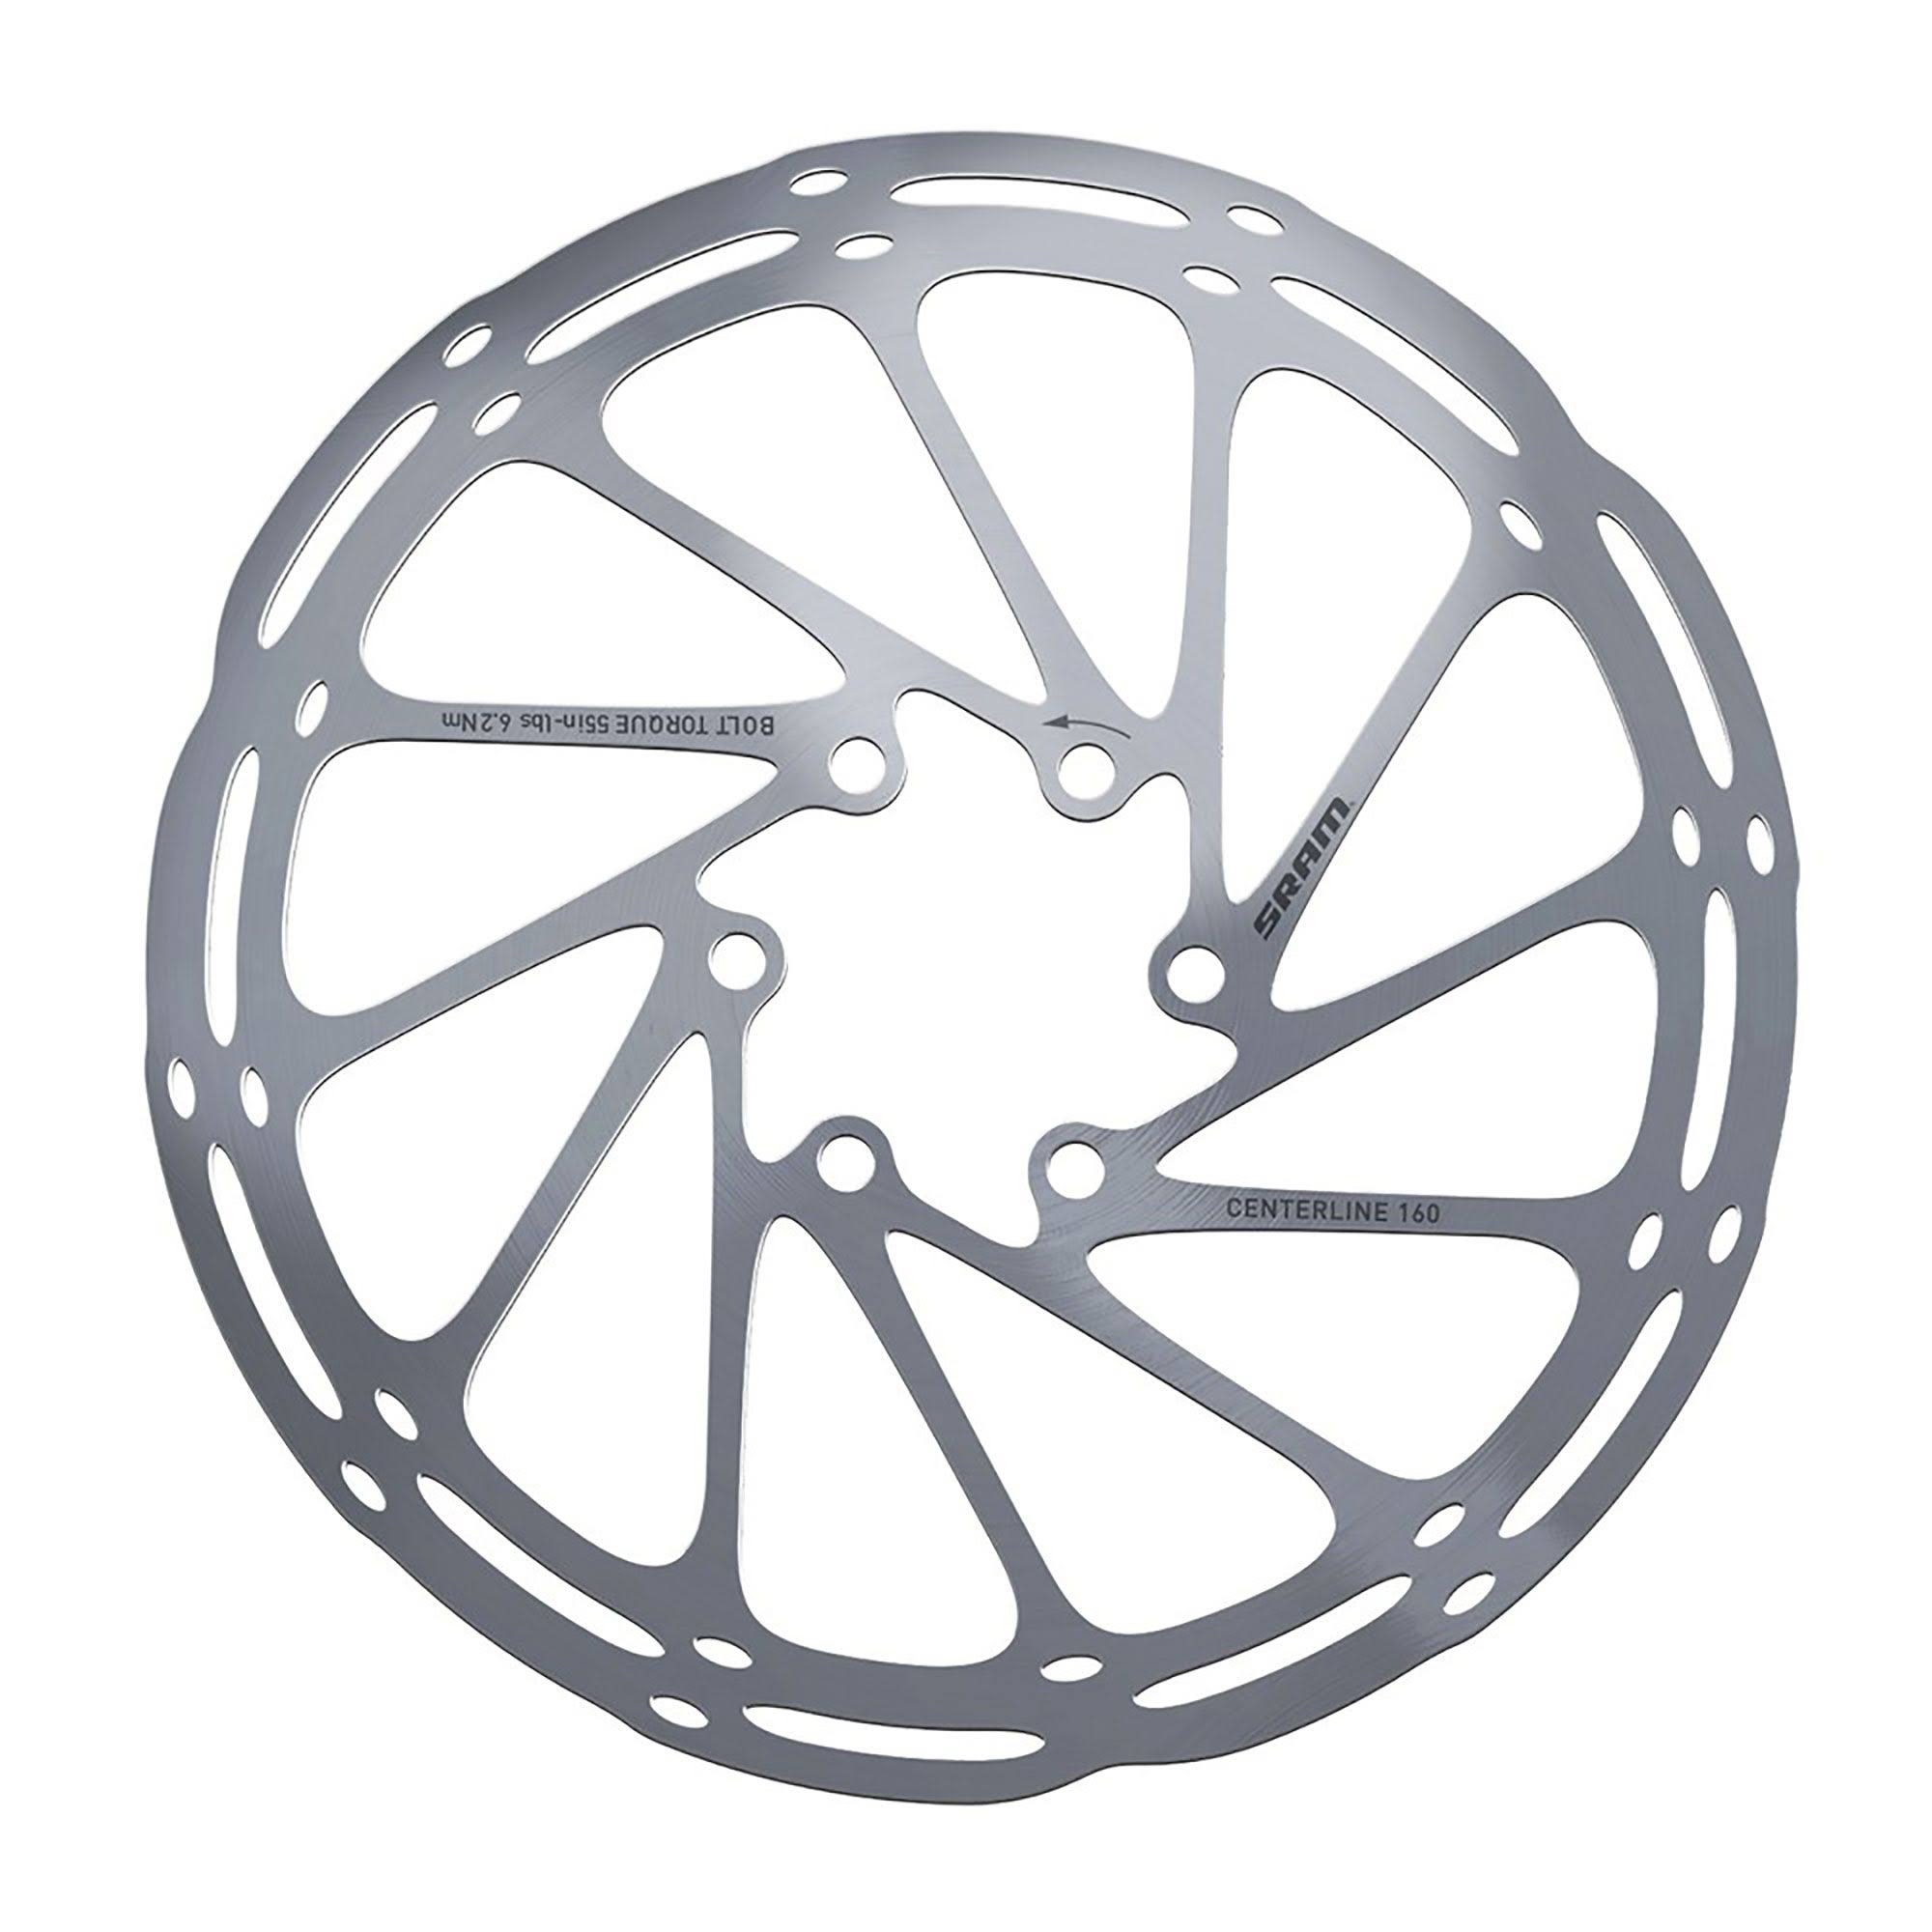 SRAM Centerline Disc Brake Rotor - 200mm